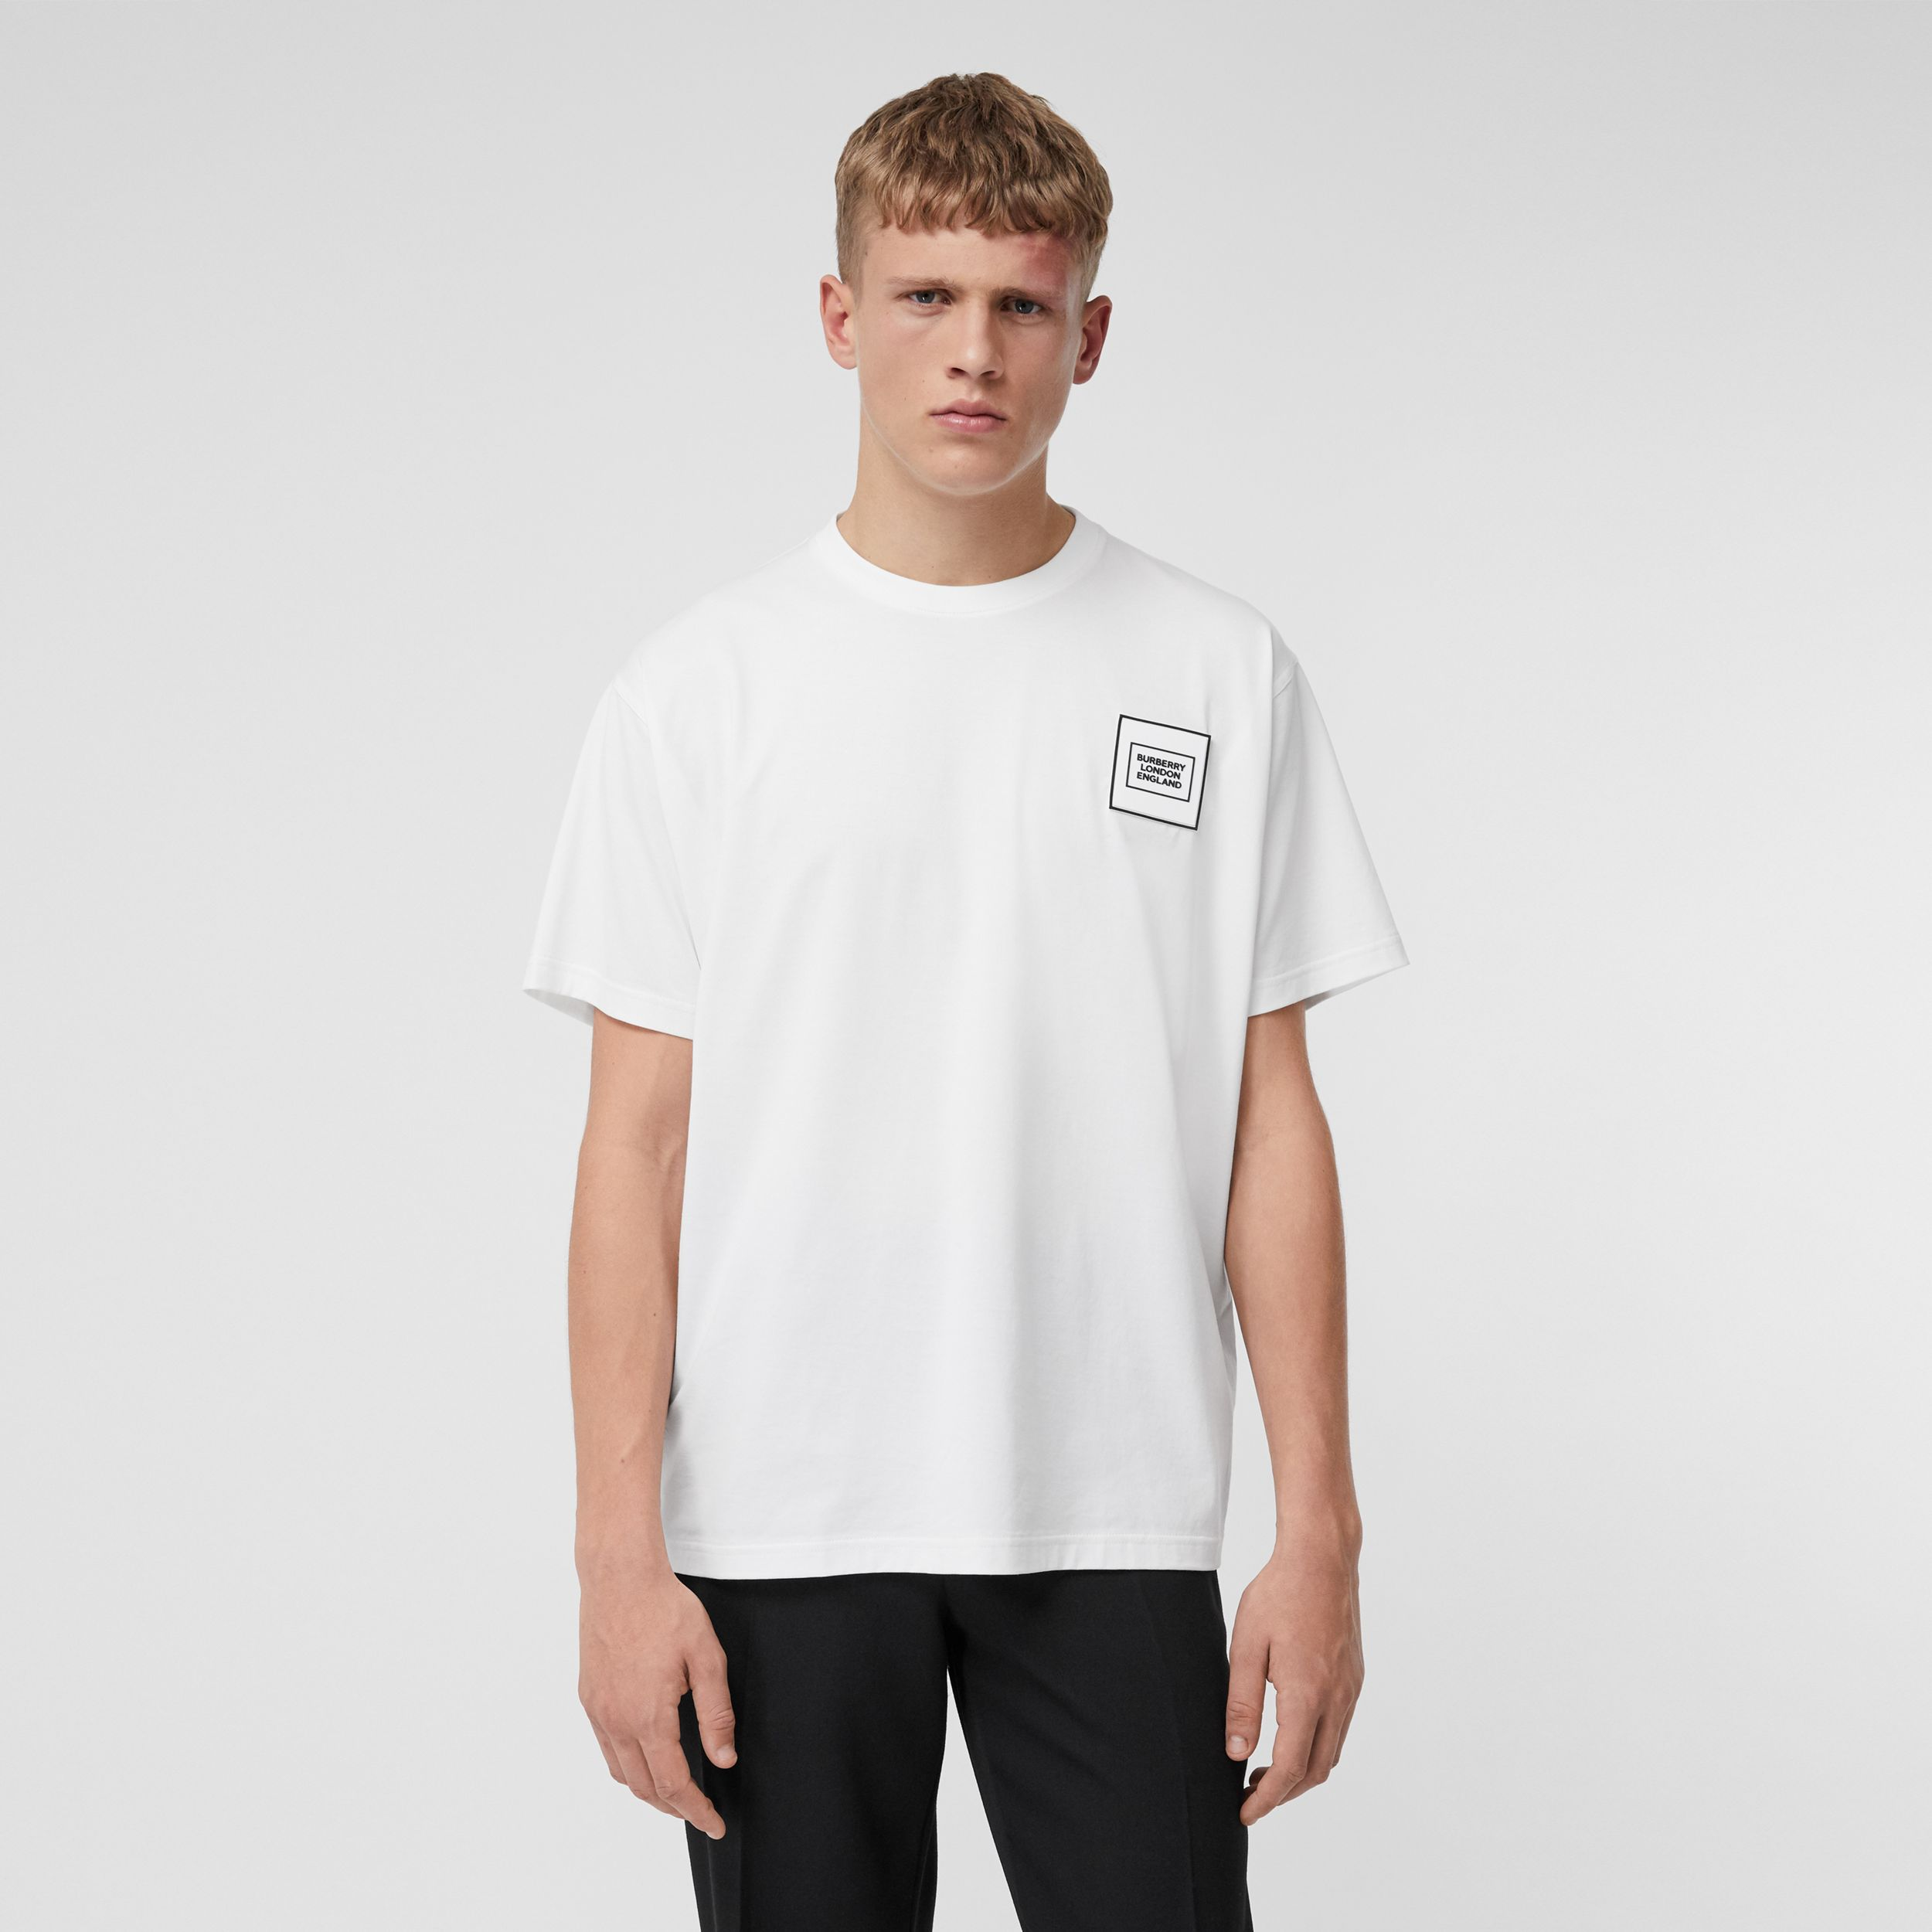 Logo Appliqué Cotton T-shirt in White - Men | Burberry - 1